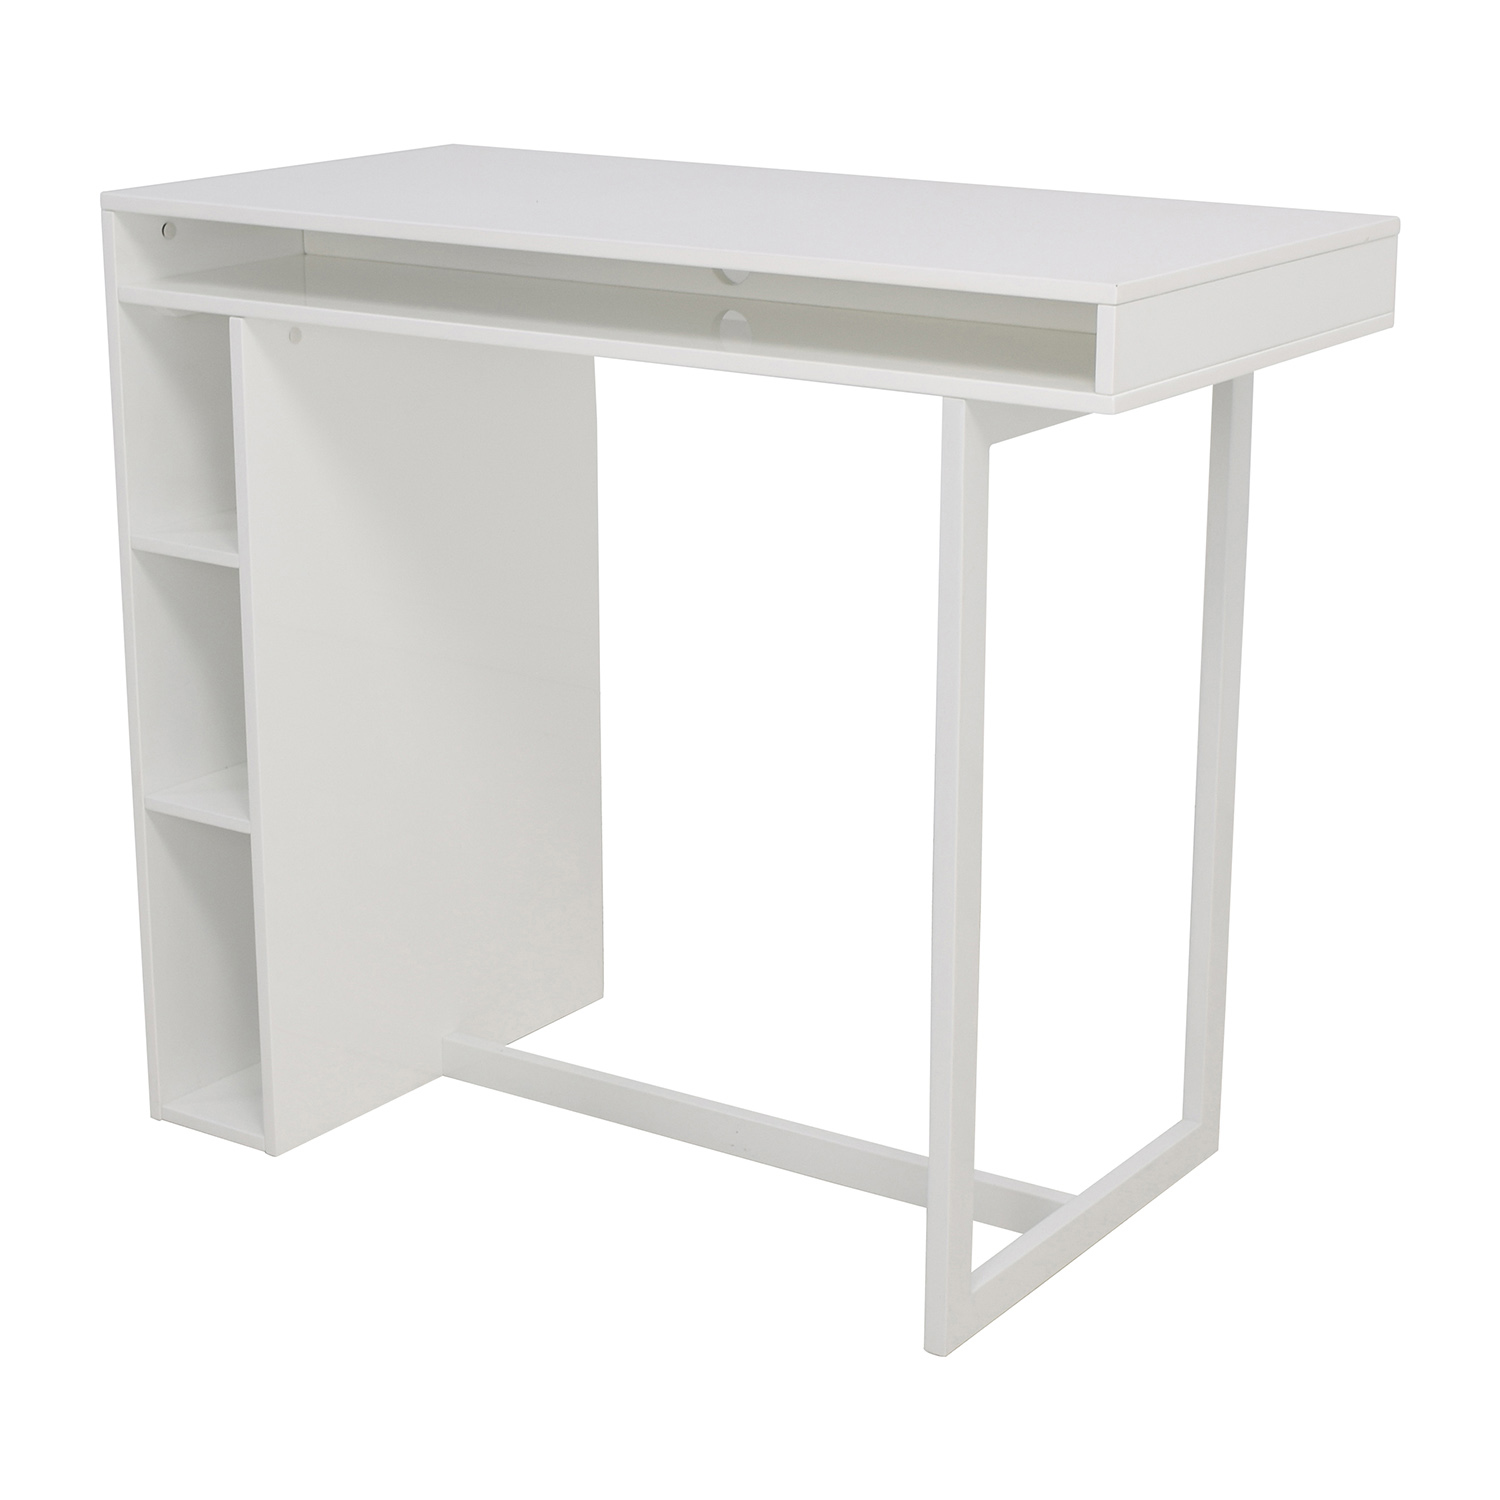 44 off cb2 cb2 white high dining table with storage for High dining table